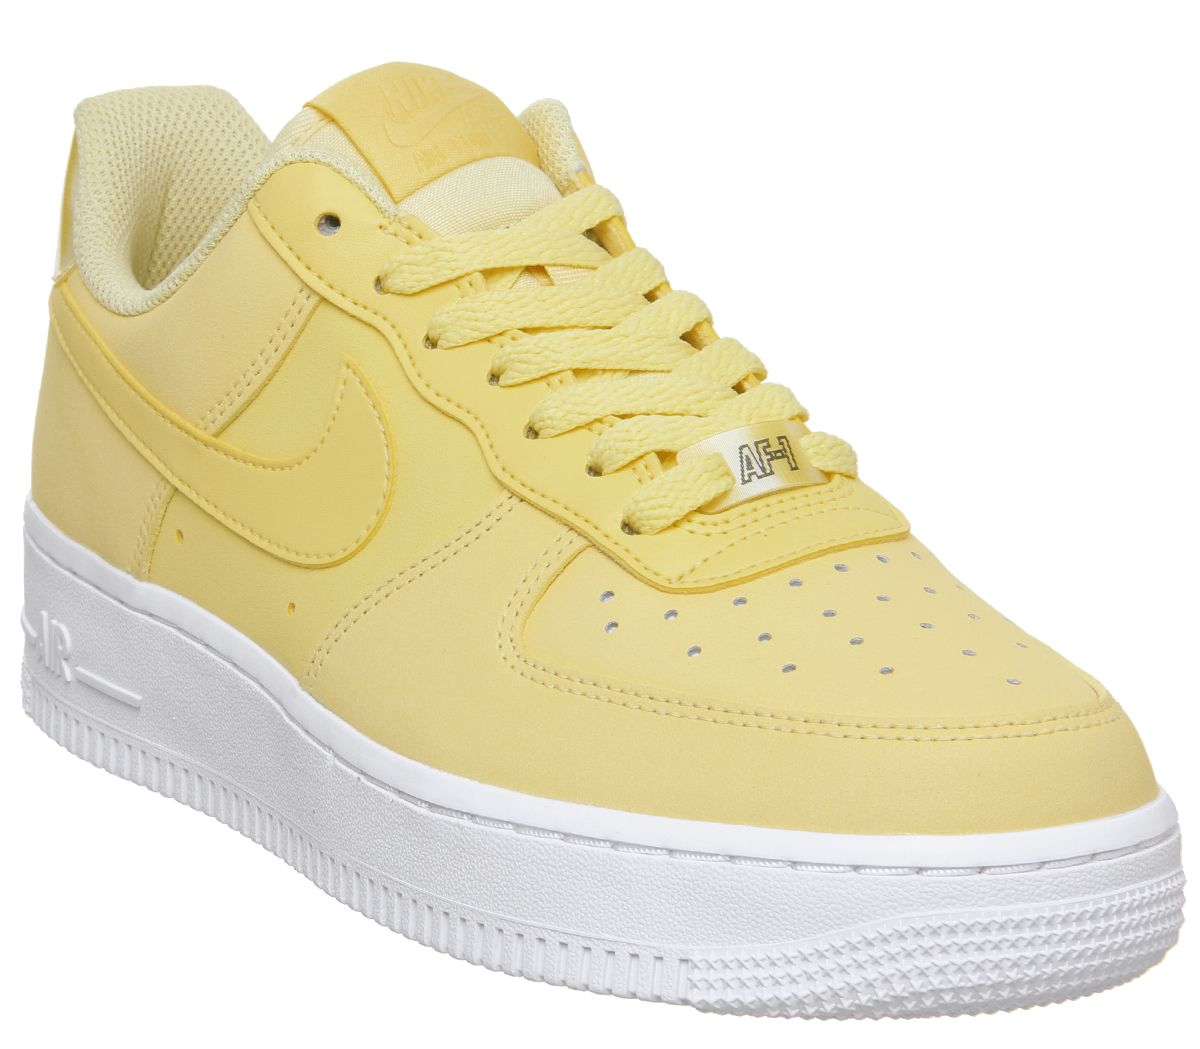 86ab165005baf3 Nike Air Force 1 07 Trainers Bicycle Yellow White - Hers trainers